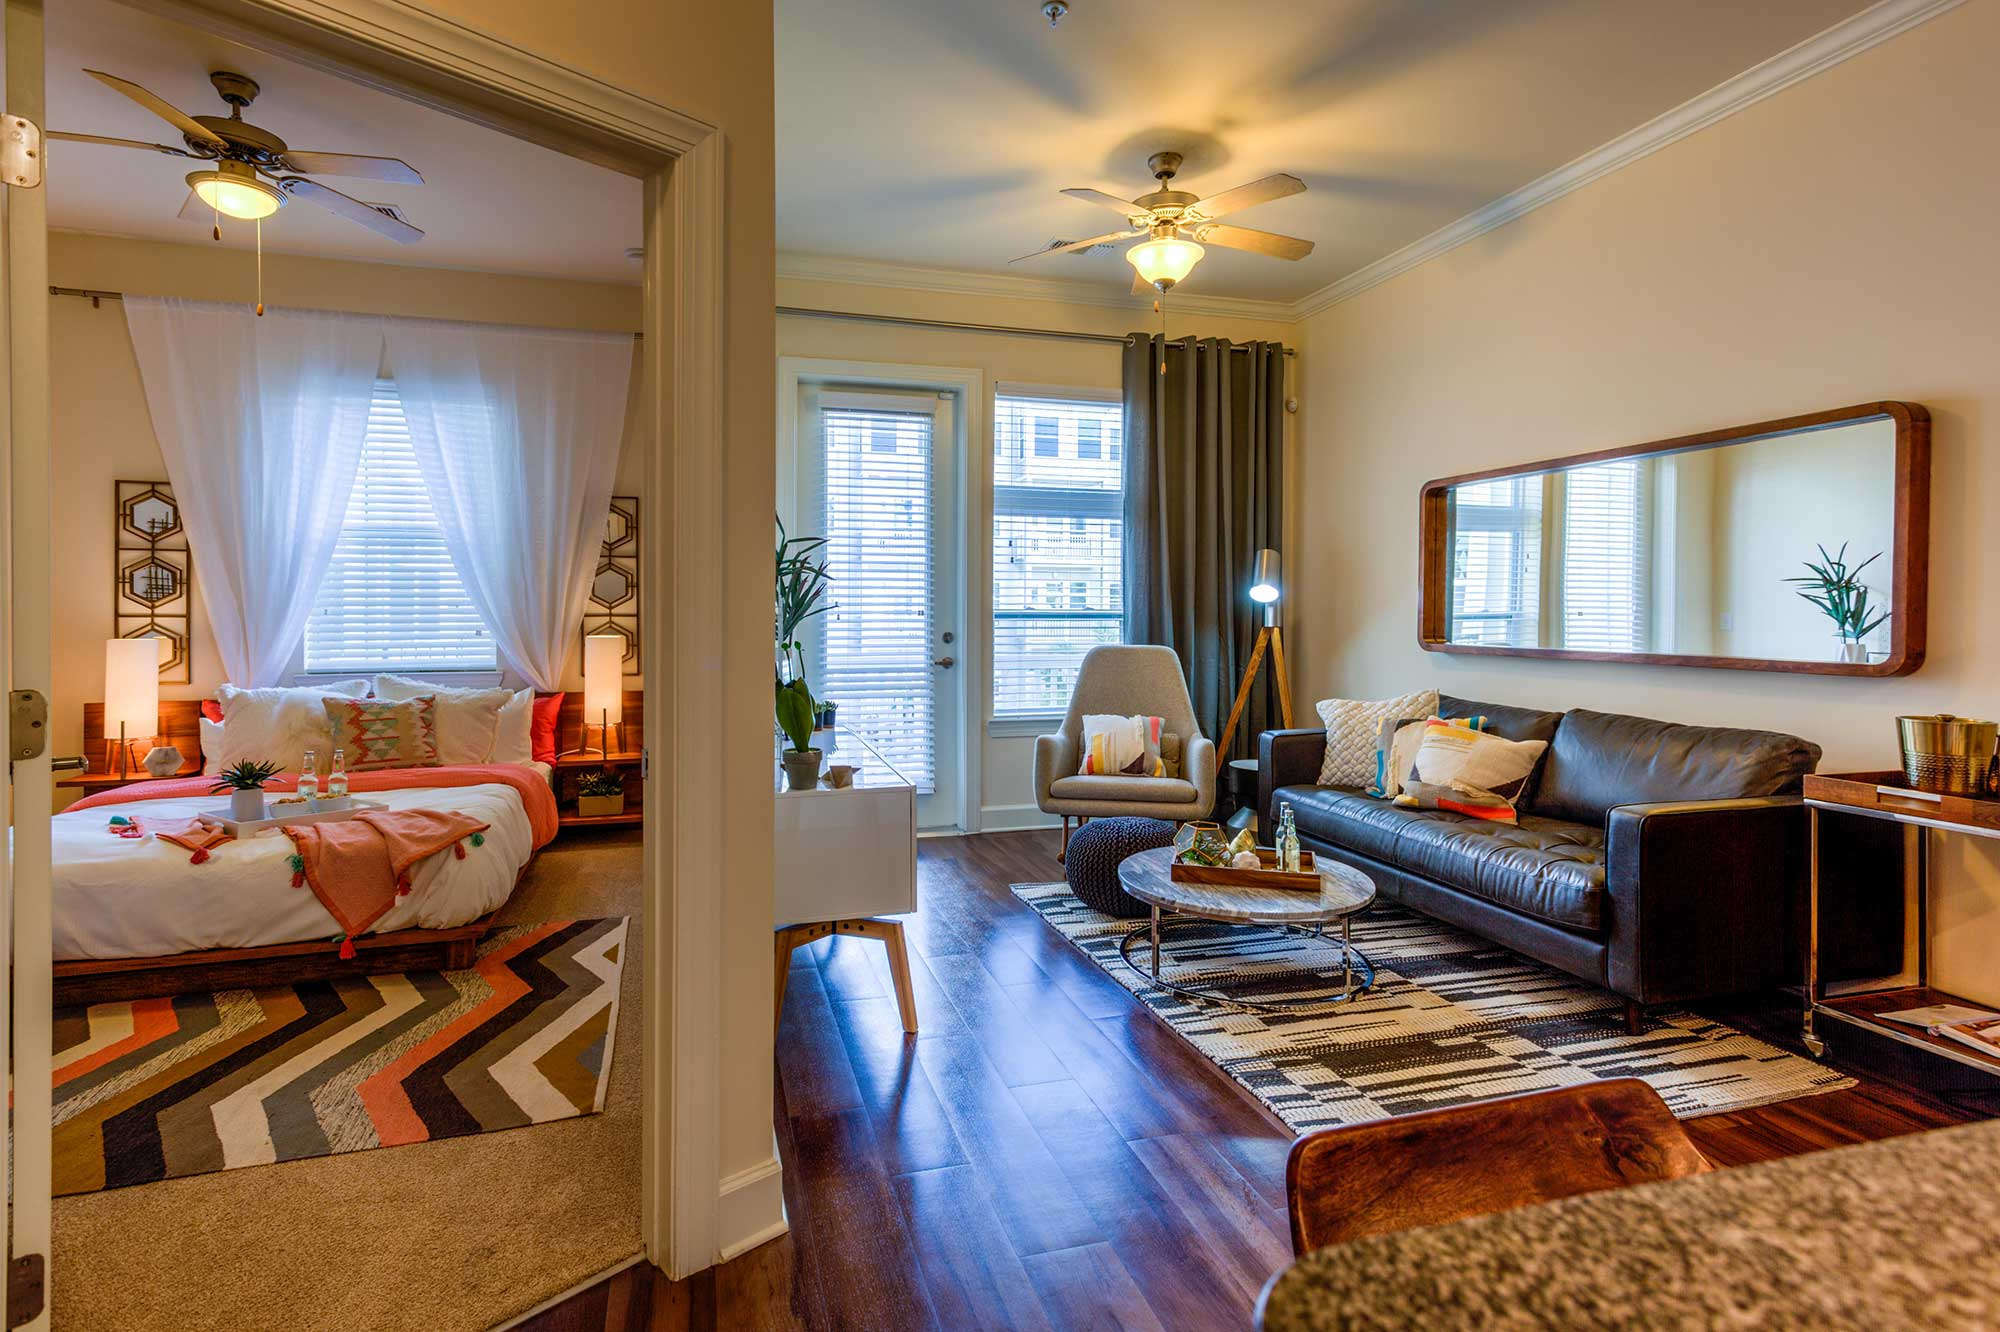 Lake Lofts At Deerwood   One And Two Bedroom Apartments In Jacksonville, FL